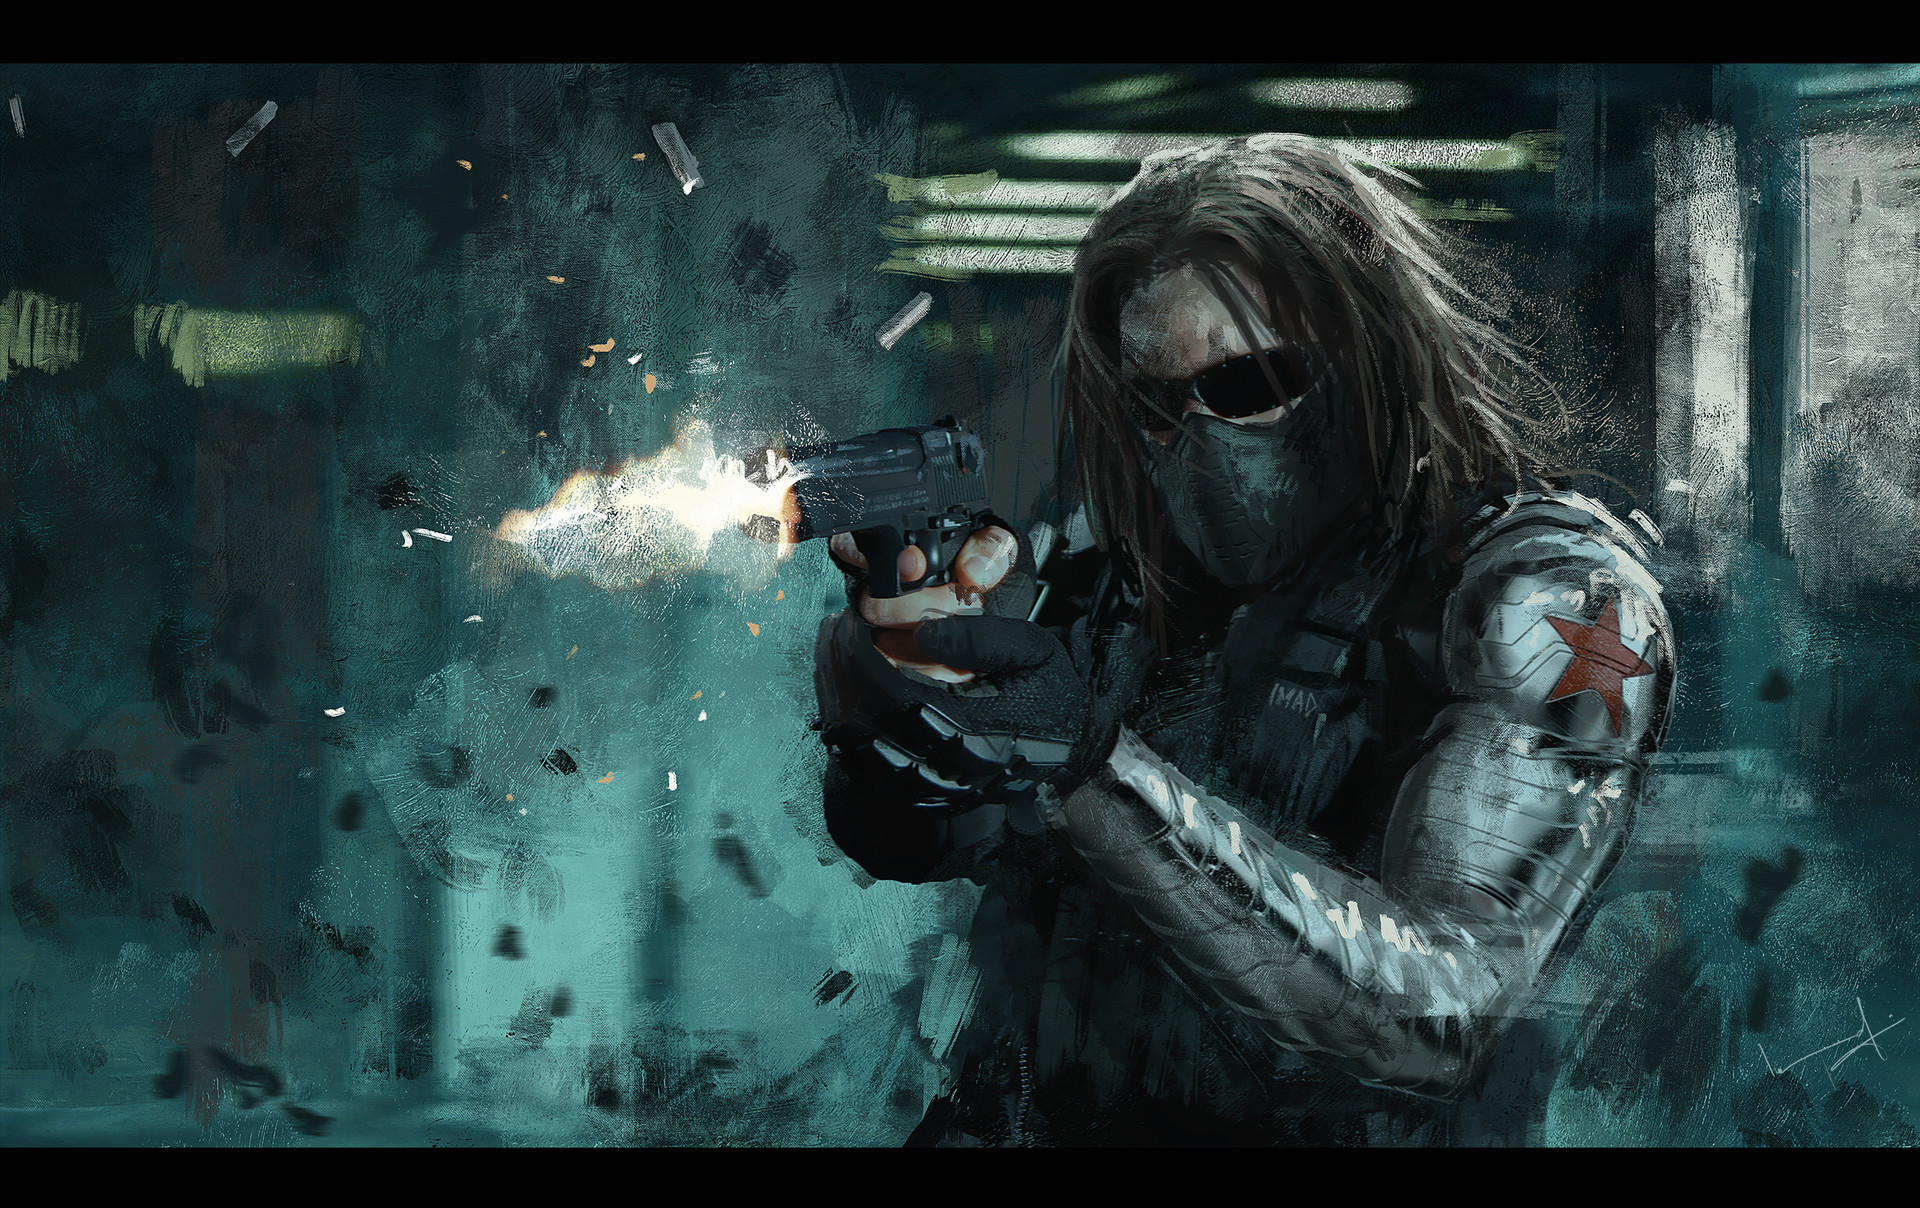 Imx awan winter soldier artstation